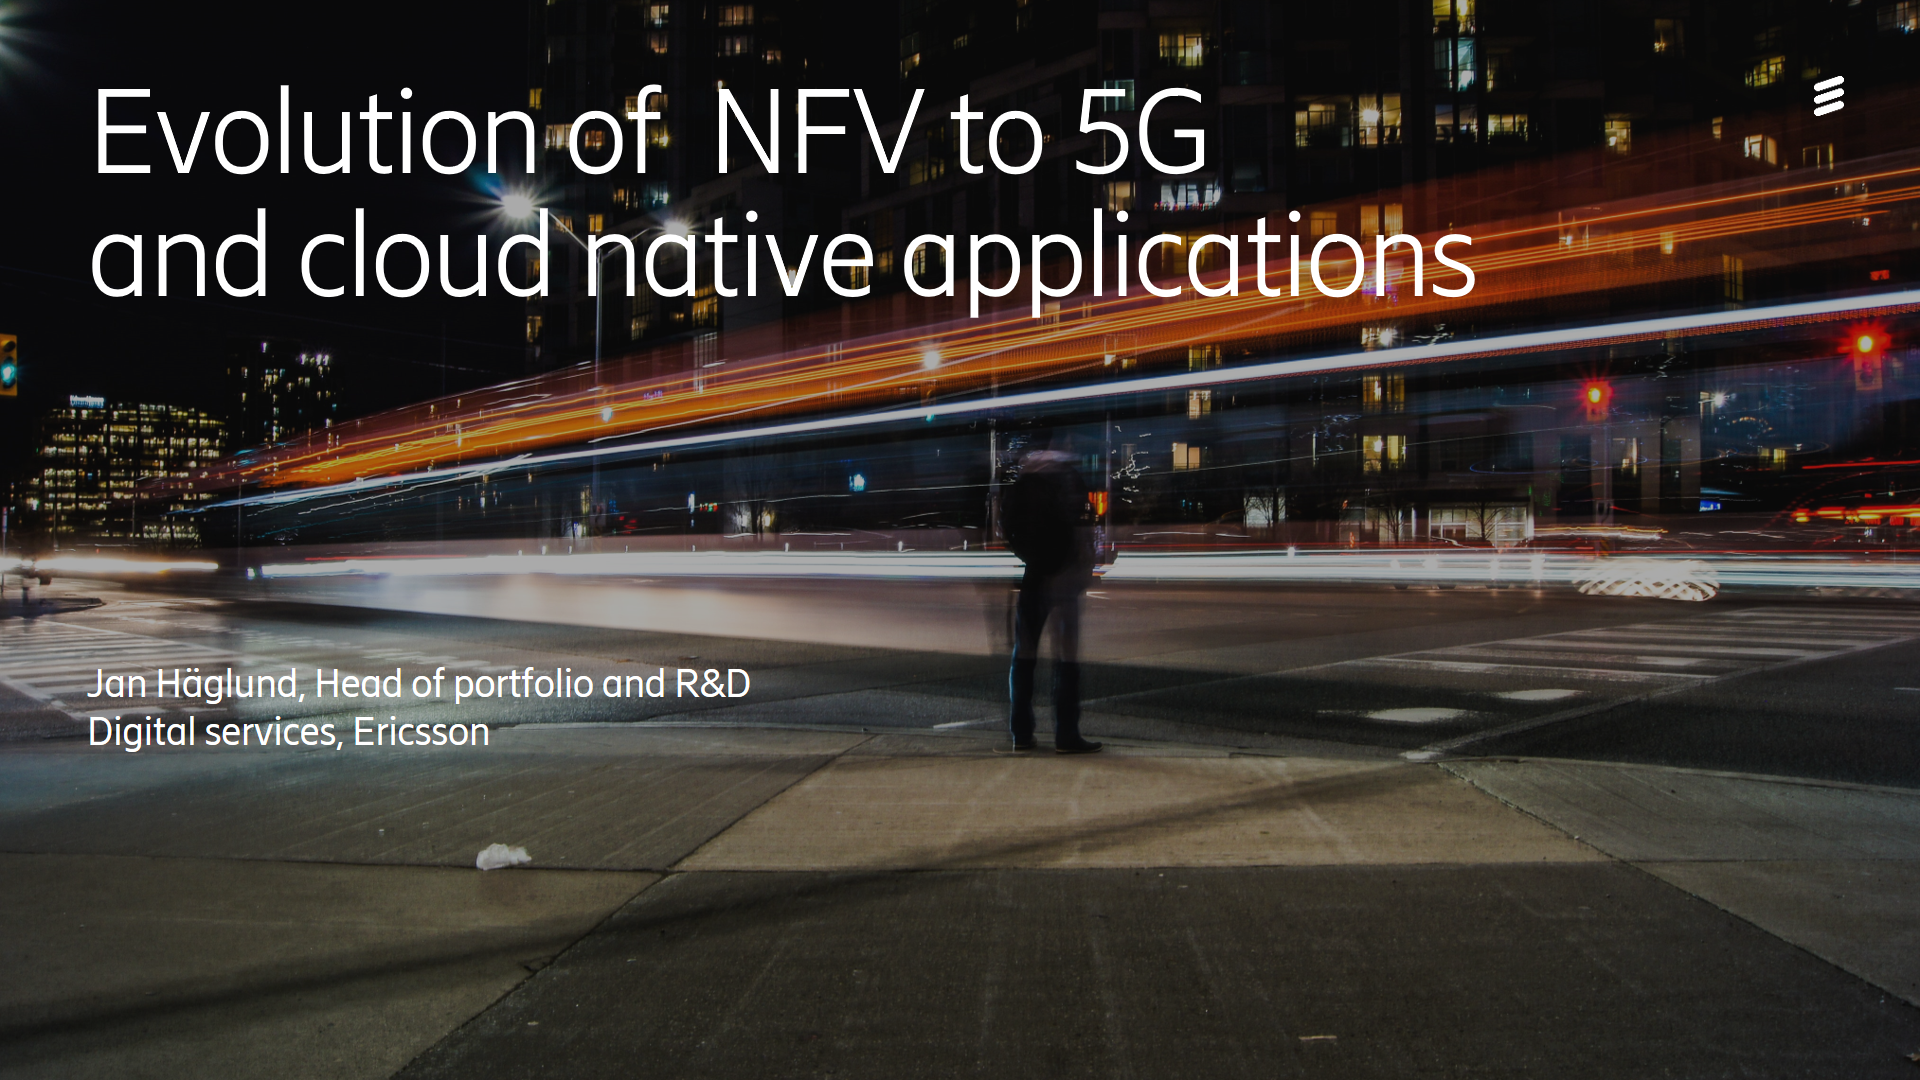 Evolution of NFV to 5G